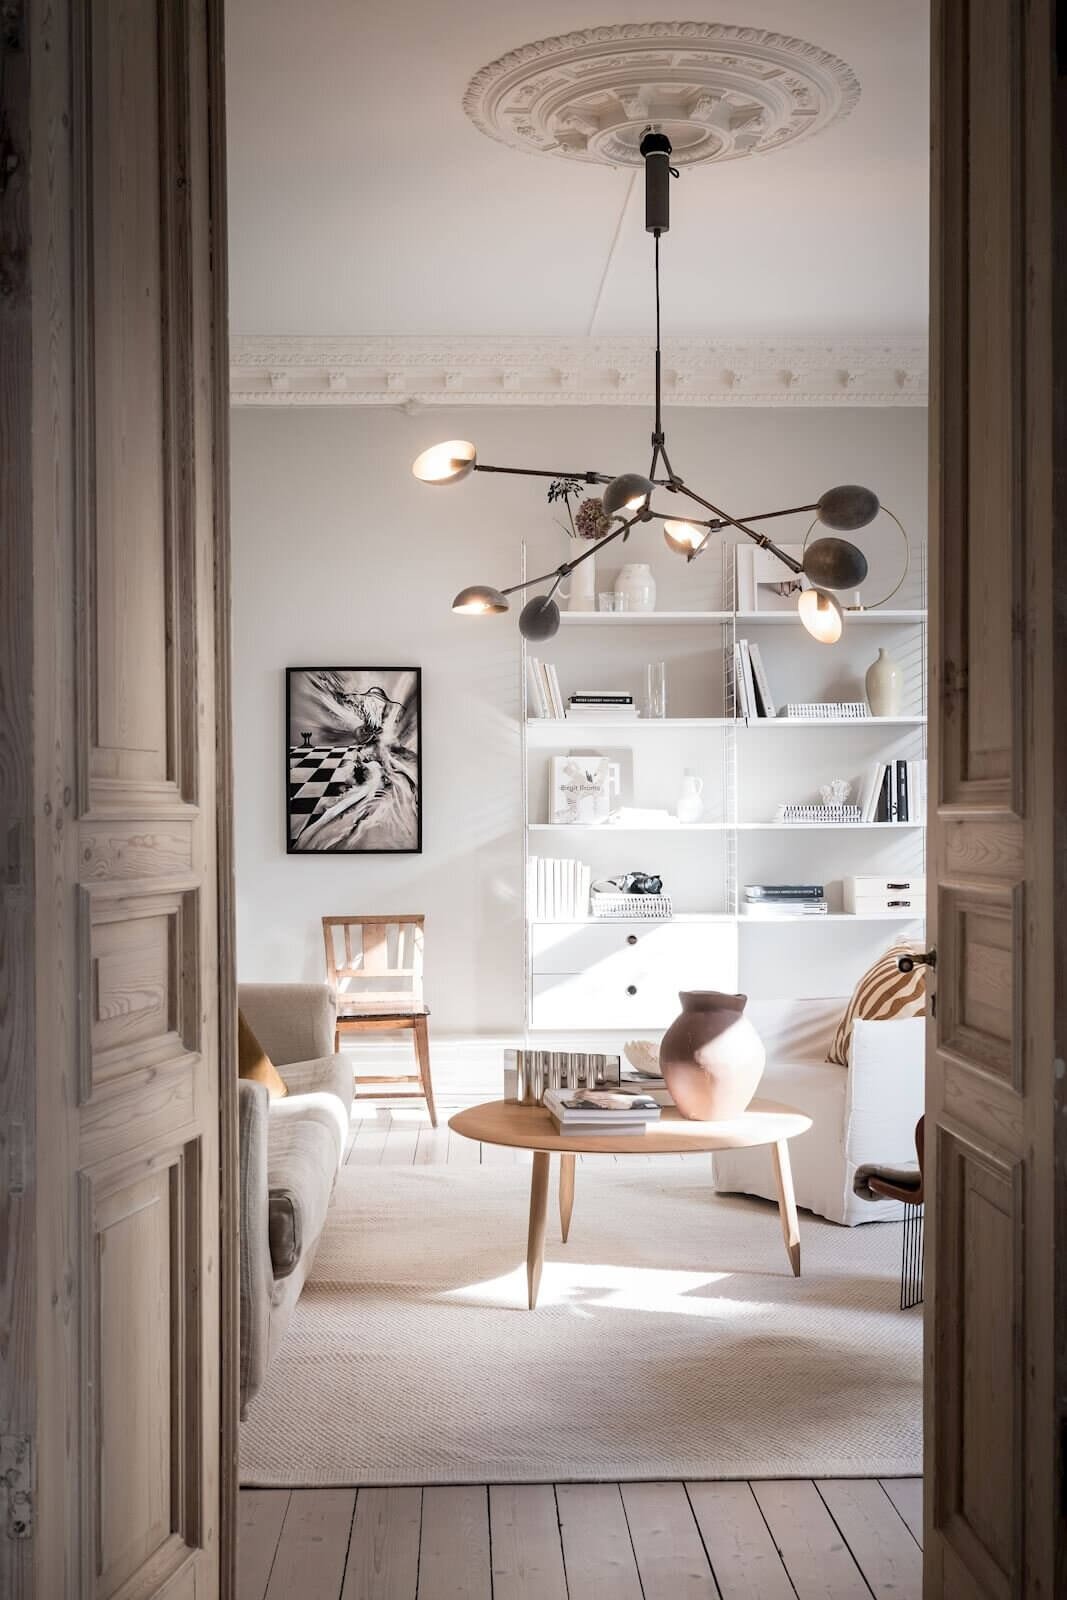 High Ceilings and Original Features In A Stunning Swedish Apartment